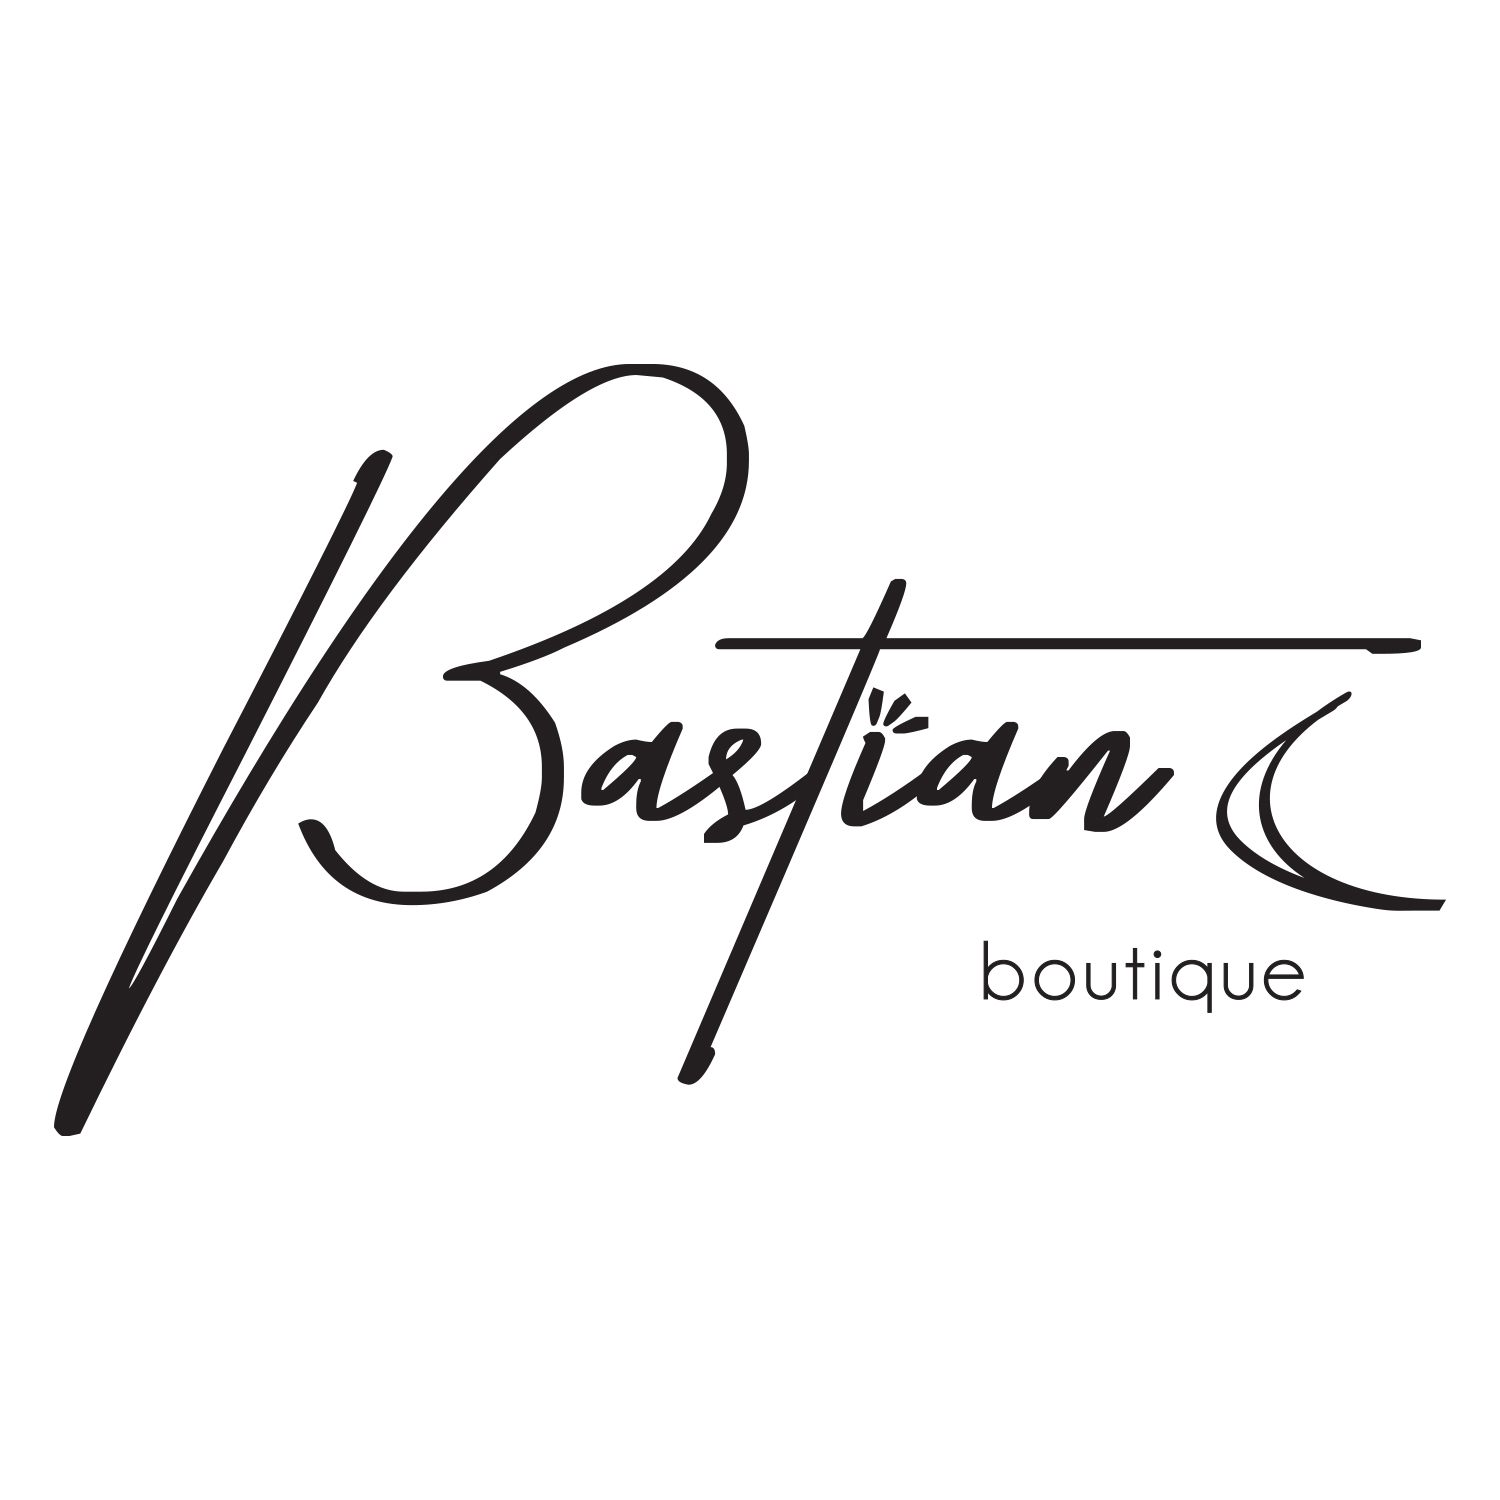 Bastian boutique